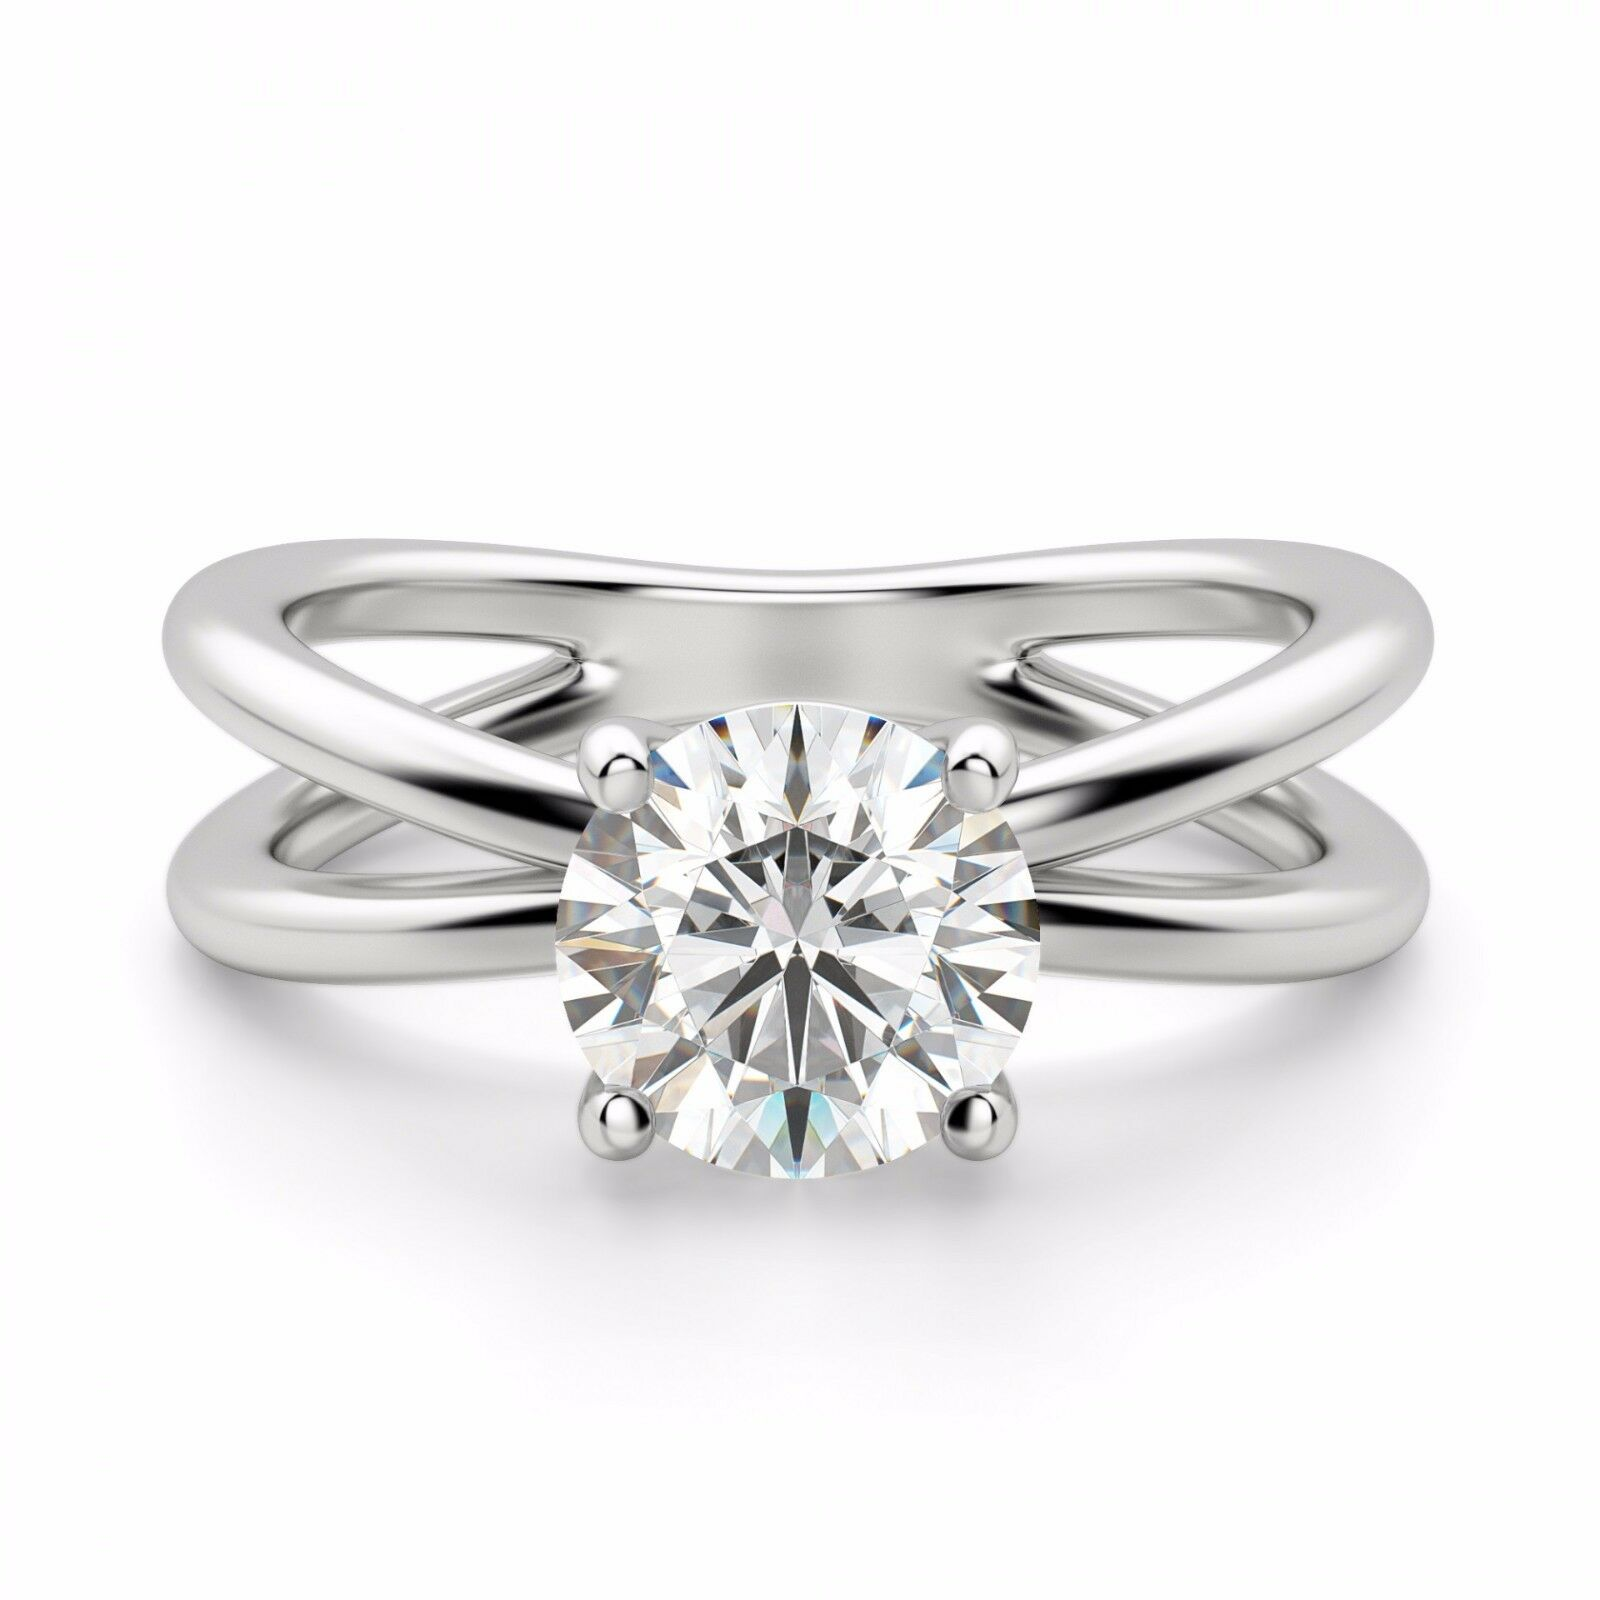 14K White gold Rings Round 2.00 Ct VVS1 Diamond Solitaire Engagement Ring Size 6